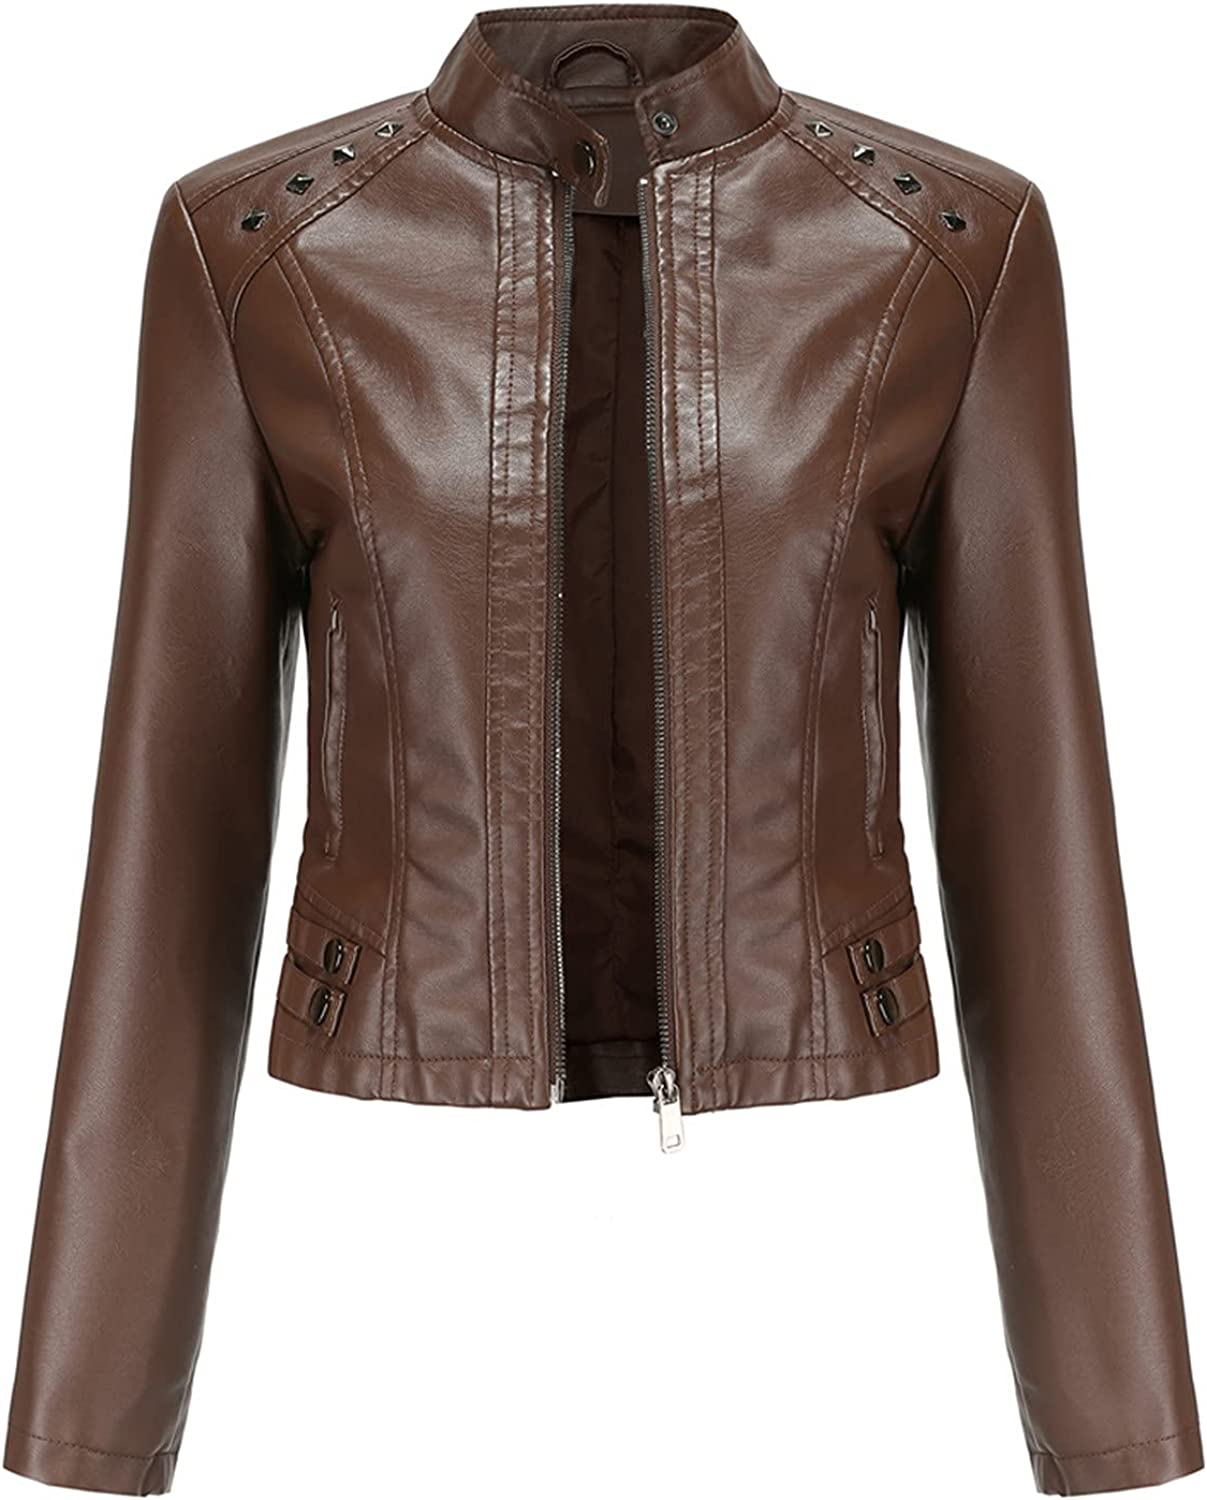 Women's Long Sleeve Zipper Fitted Cardiga Max 74% OFF Fall Coat Special sale item Crop Jackets